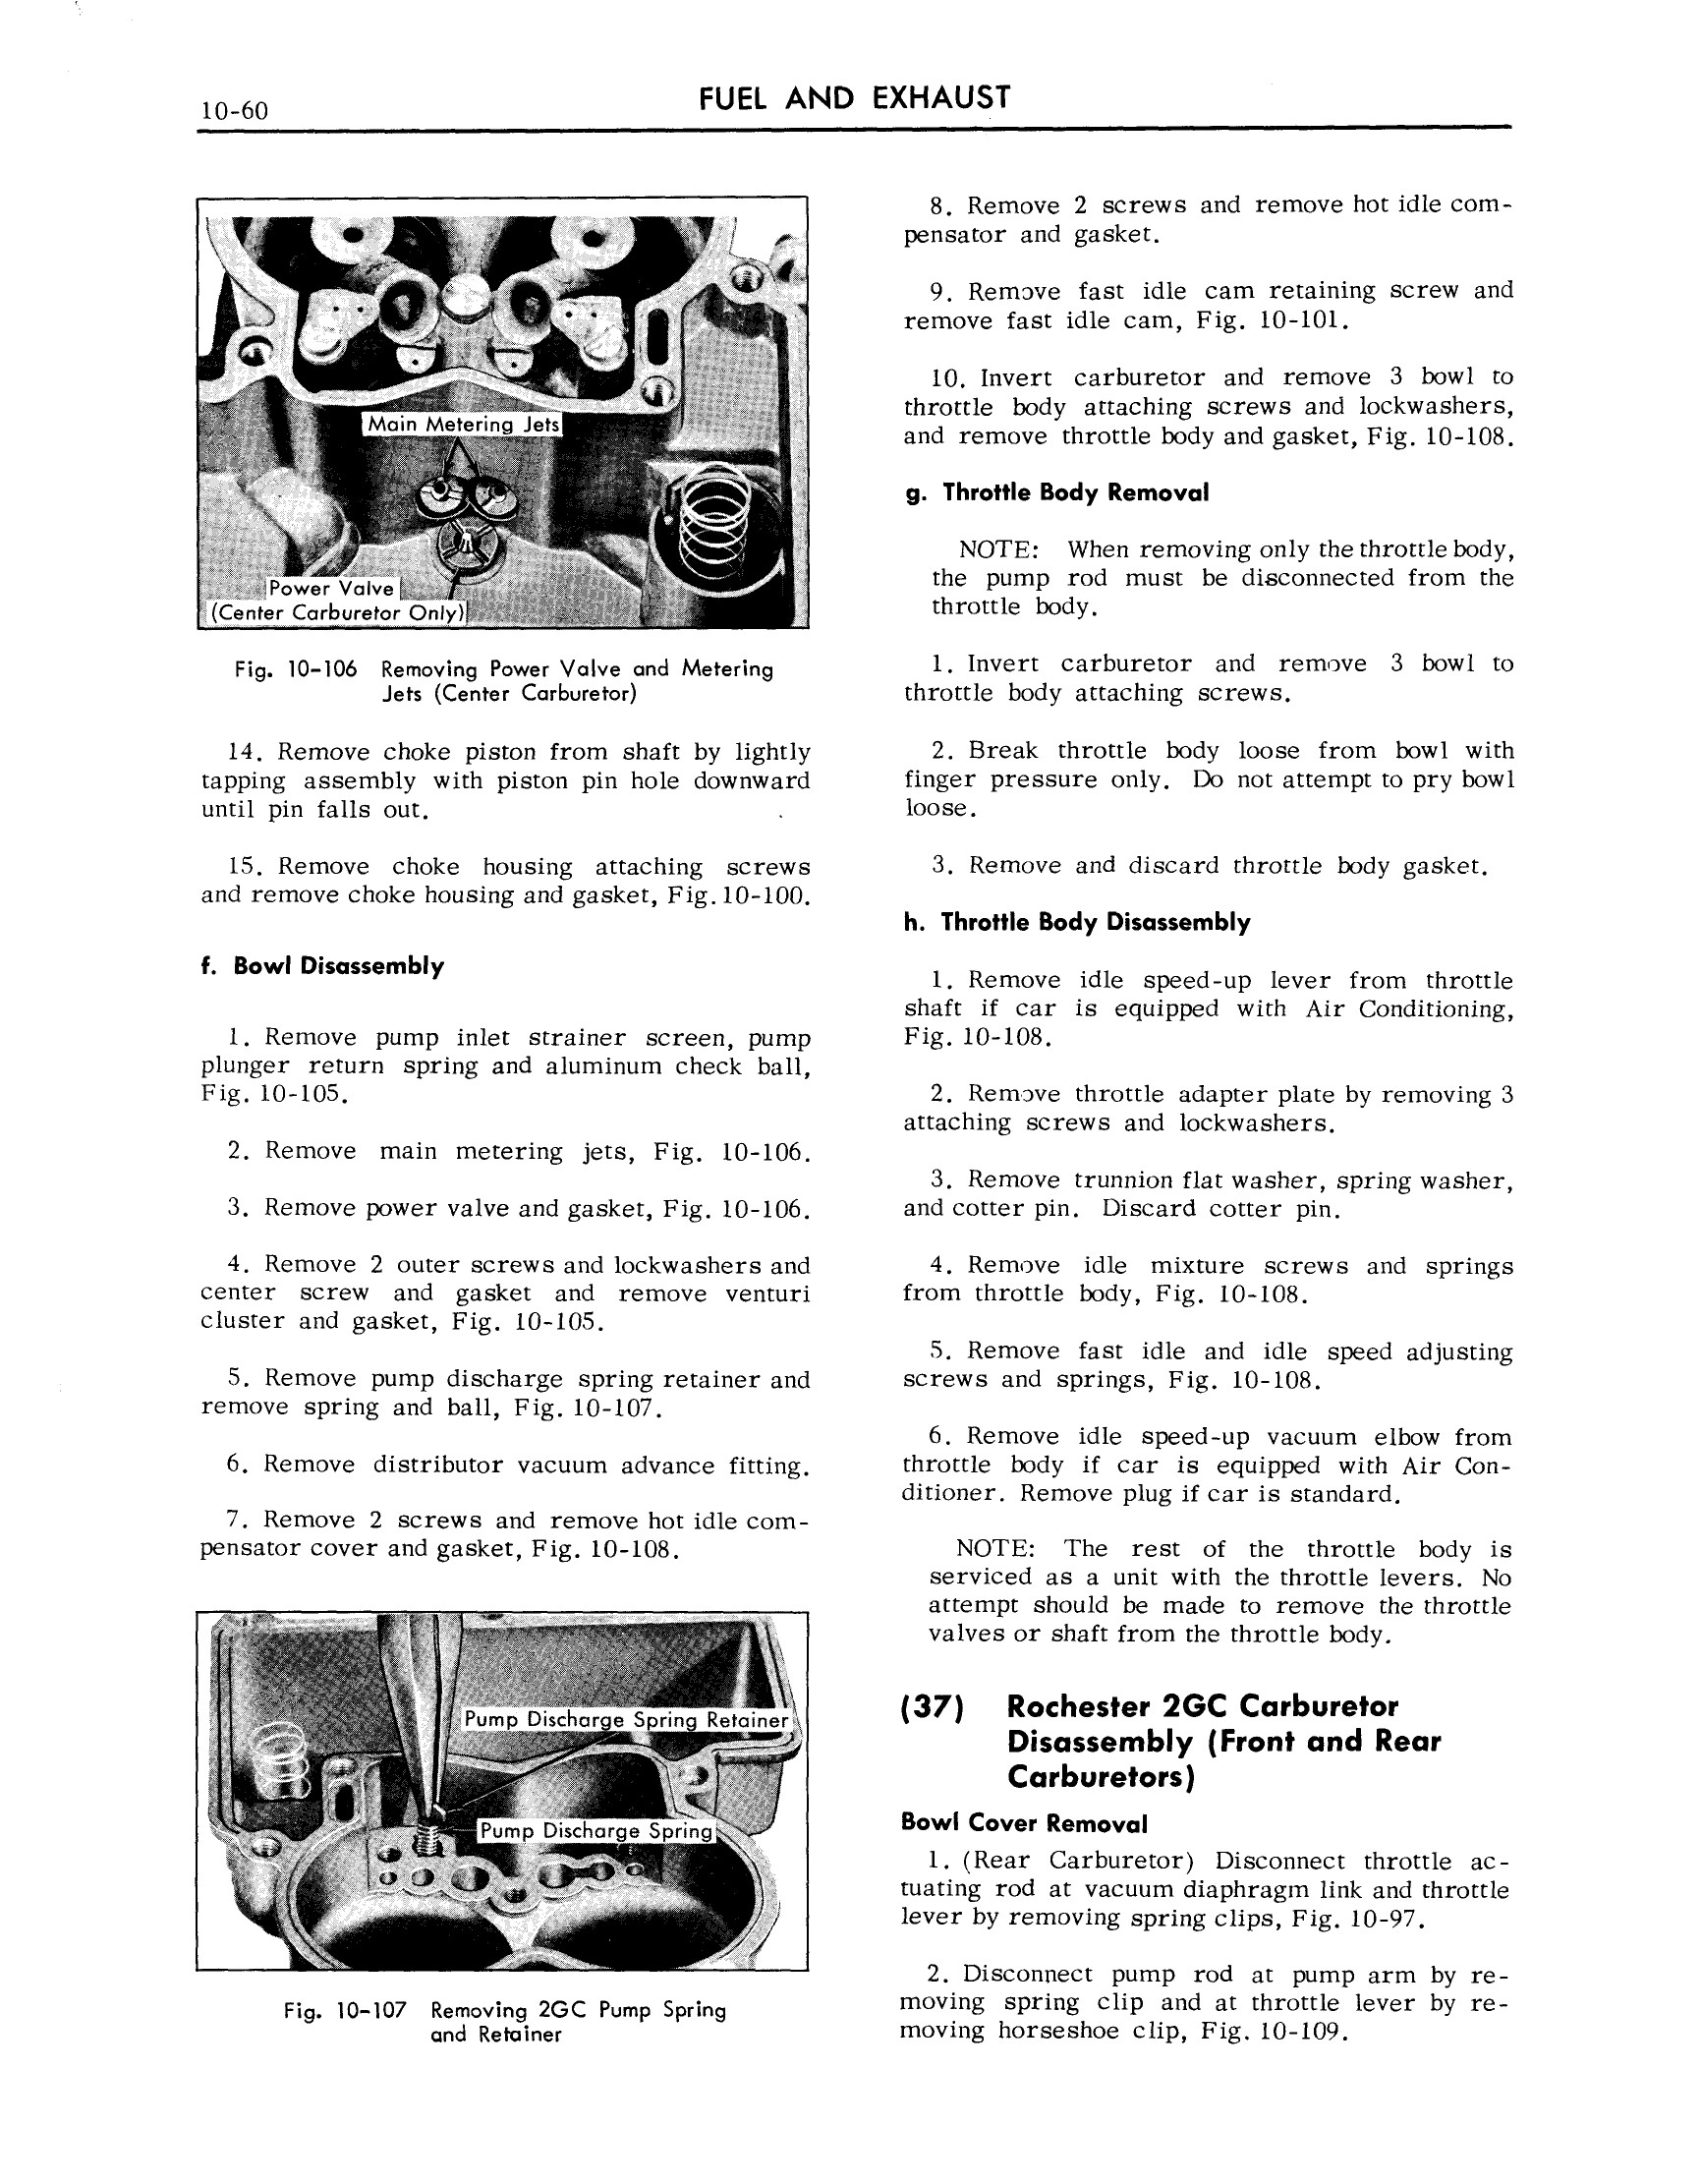 1959 Cadillac Shop Manual- Engine Fuel and Exhaust Page 60